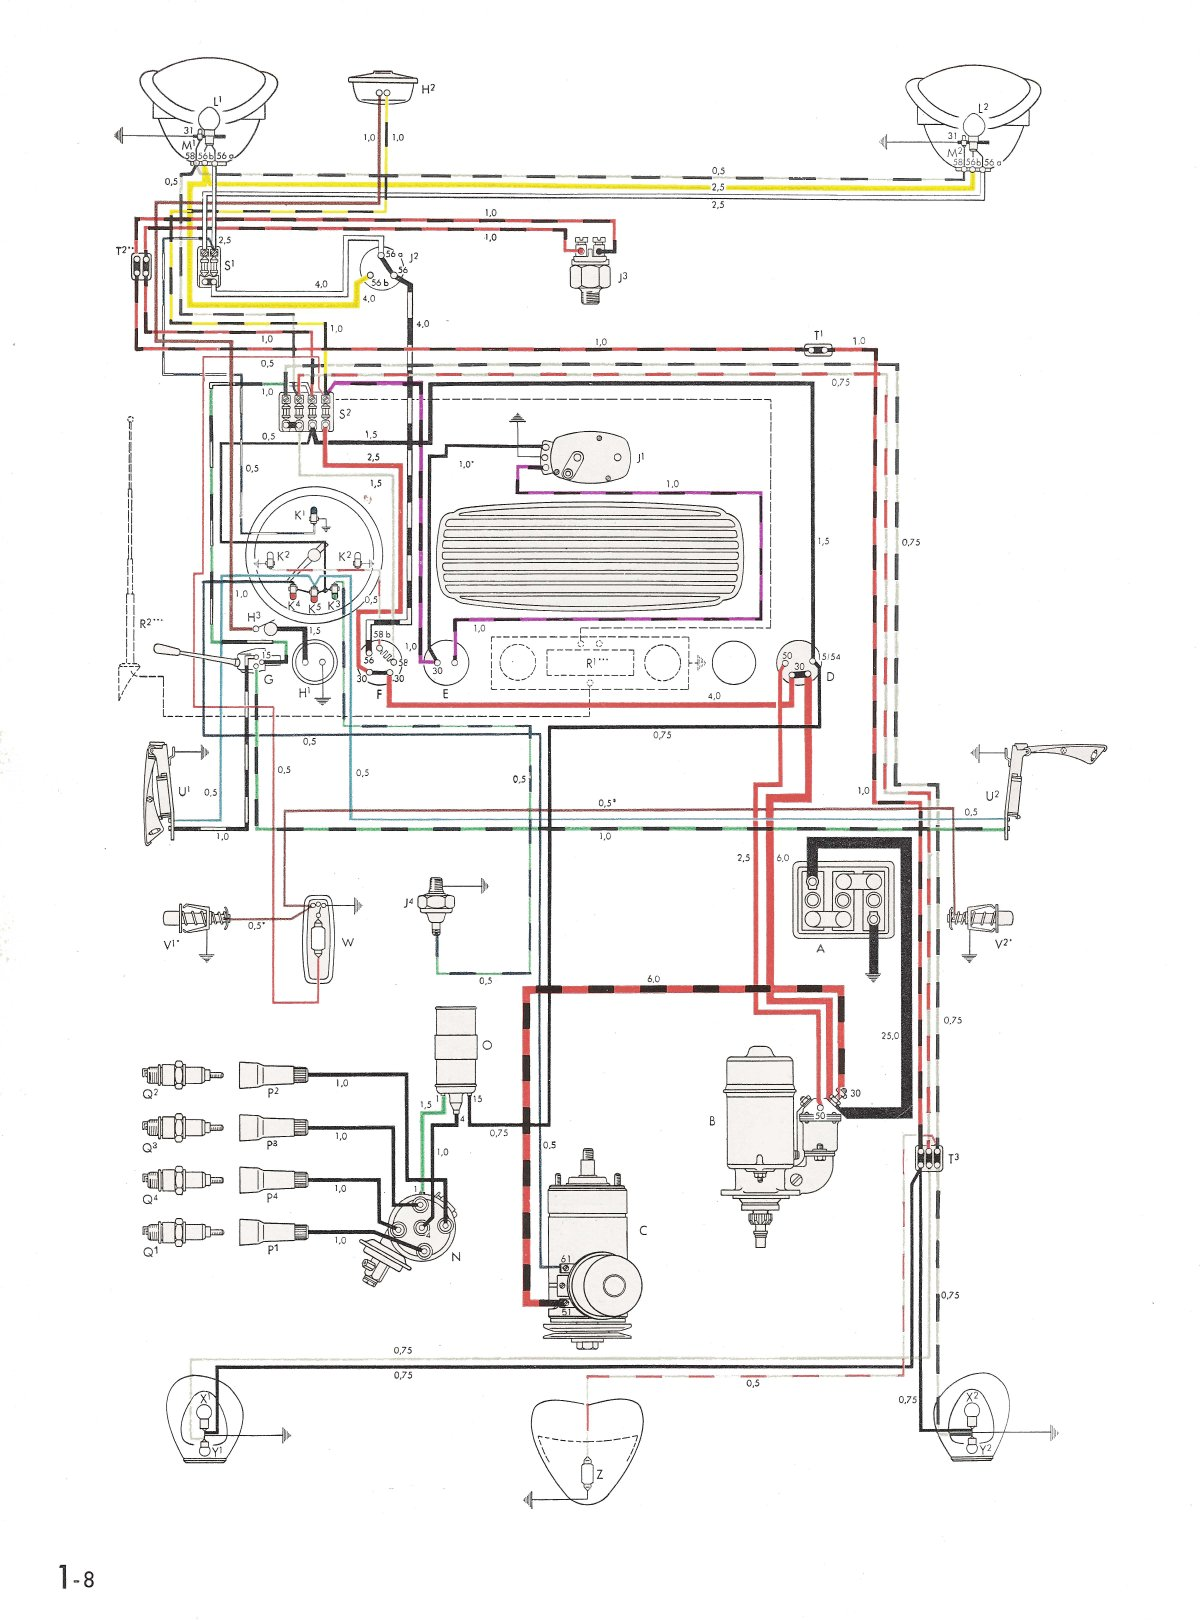 Thesamba Com Type 1 Wiring Diagrams VW Beetle Fuse Diagram 2006 1979 Vw  Beetle Fuse Diagram